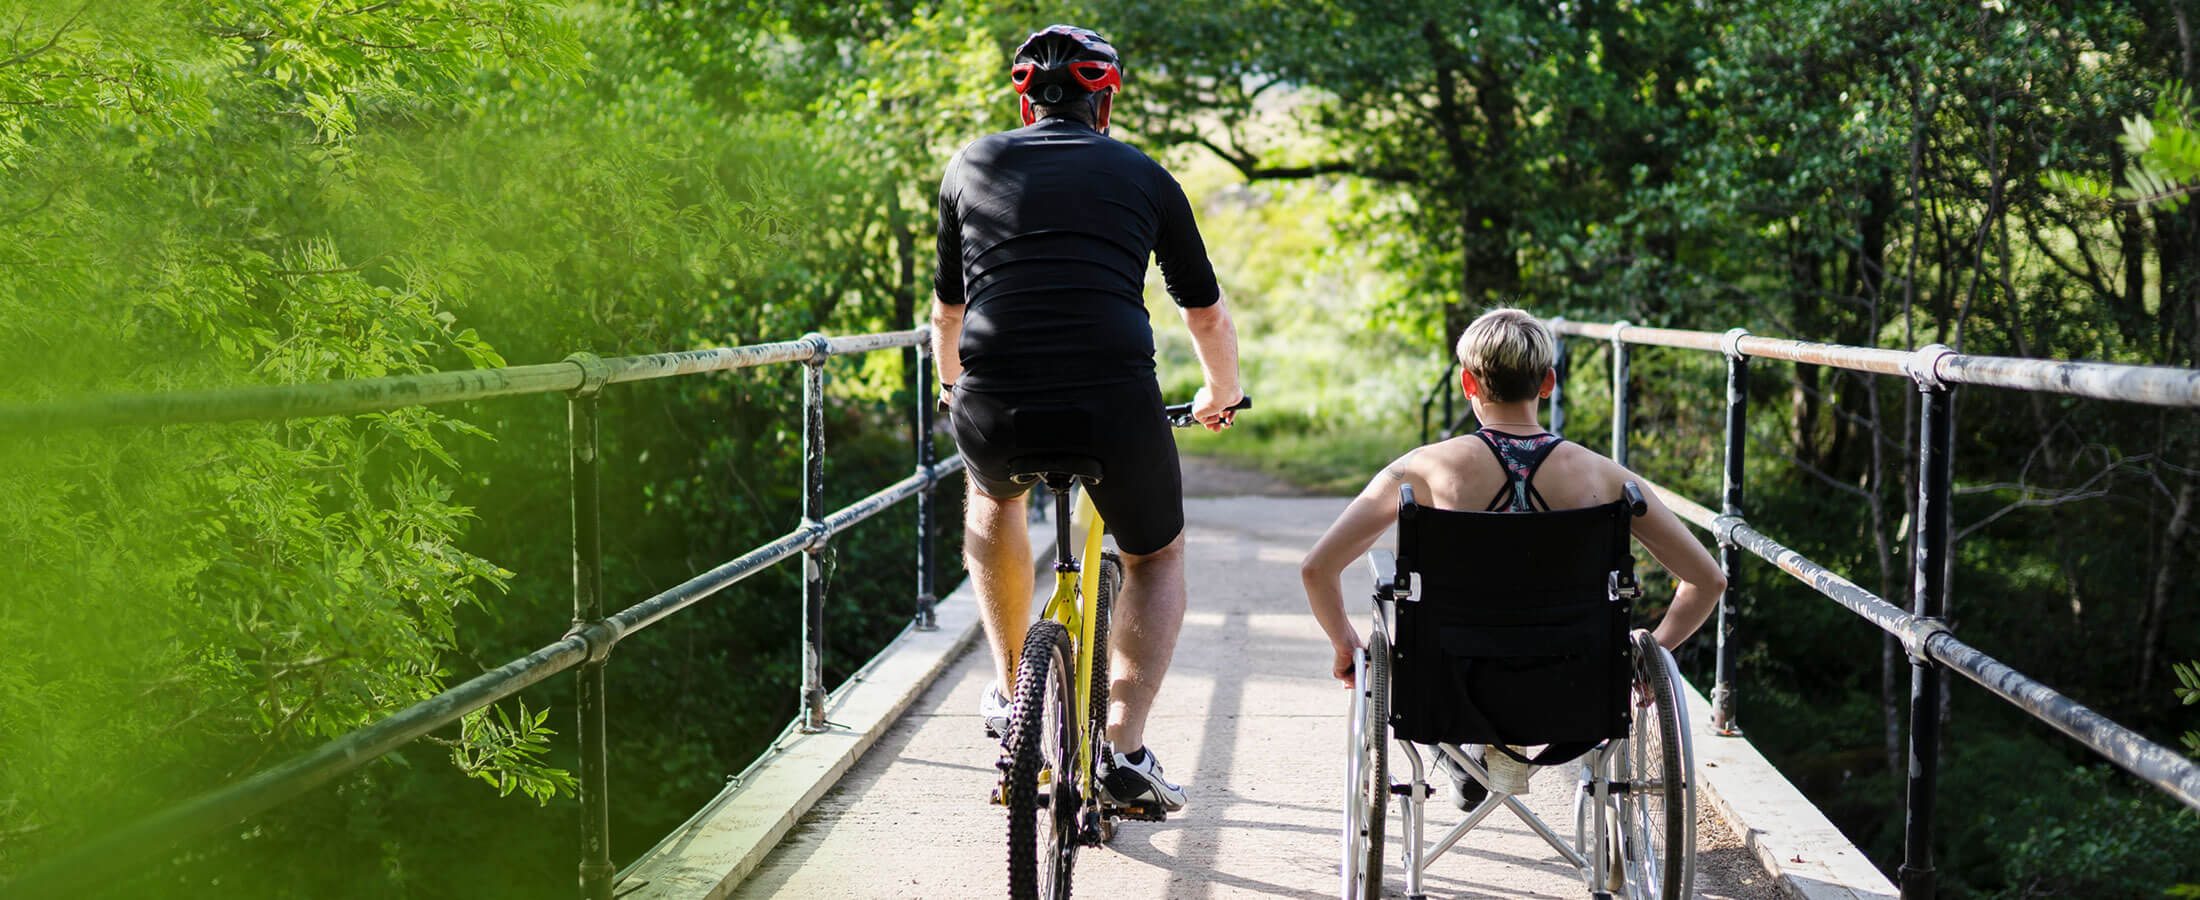 Man on a bike and woman in wheelchair on a bridge in a park